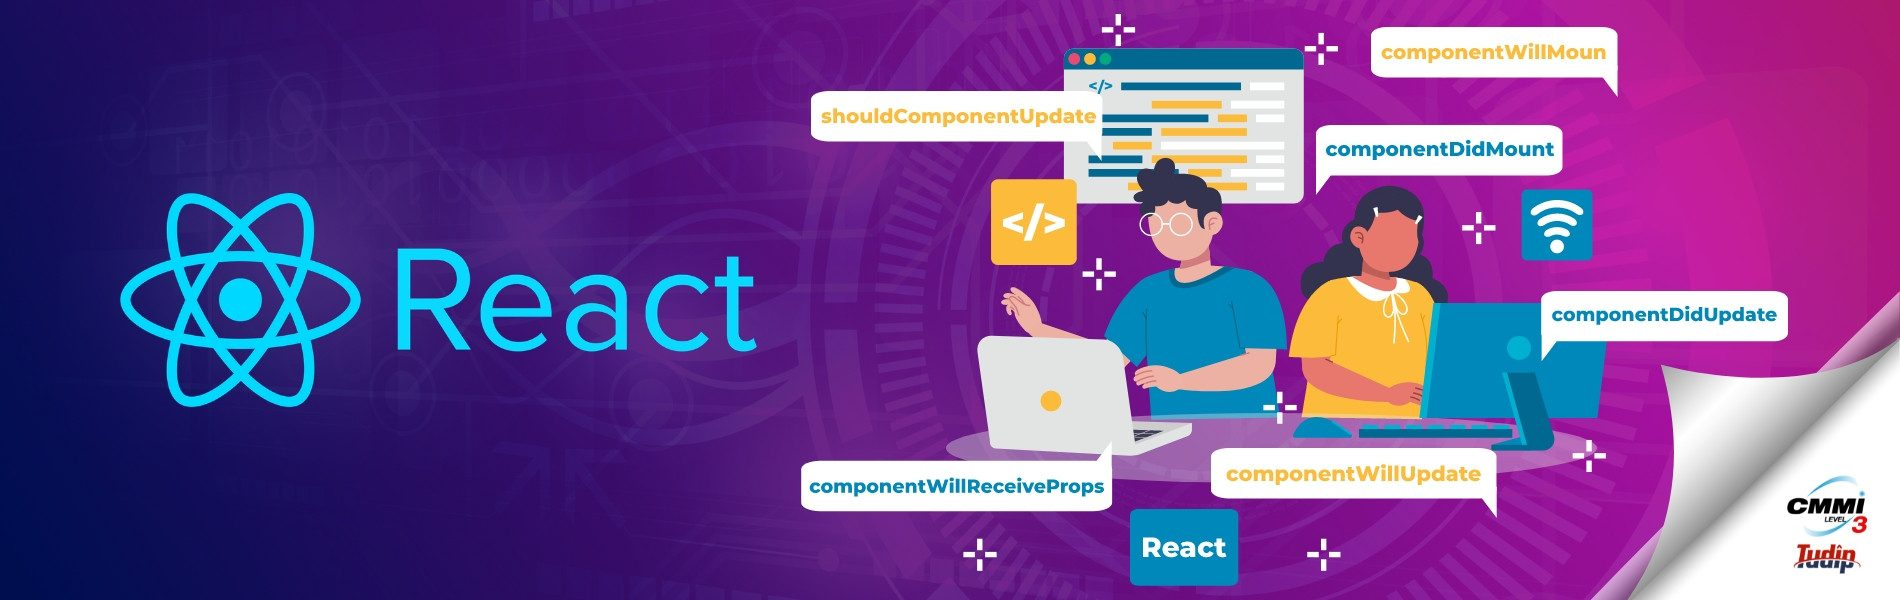 6 most used React Component LifeCycle methods